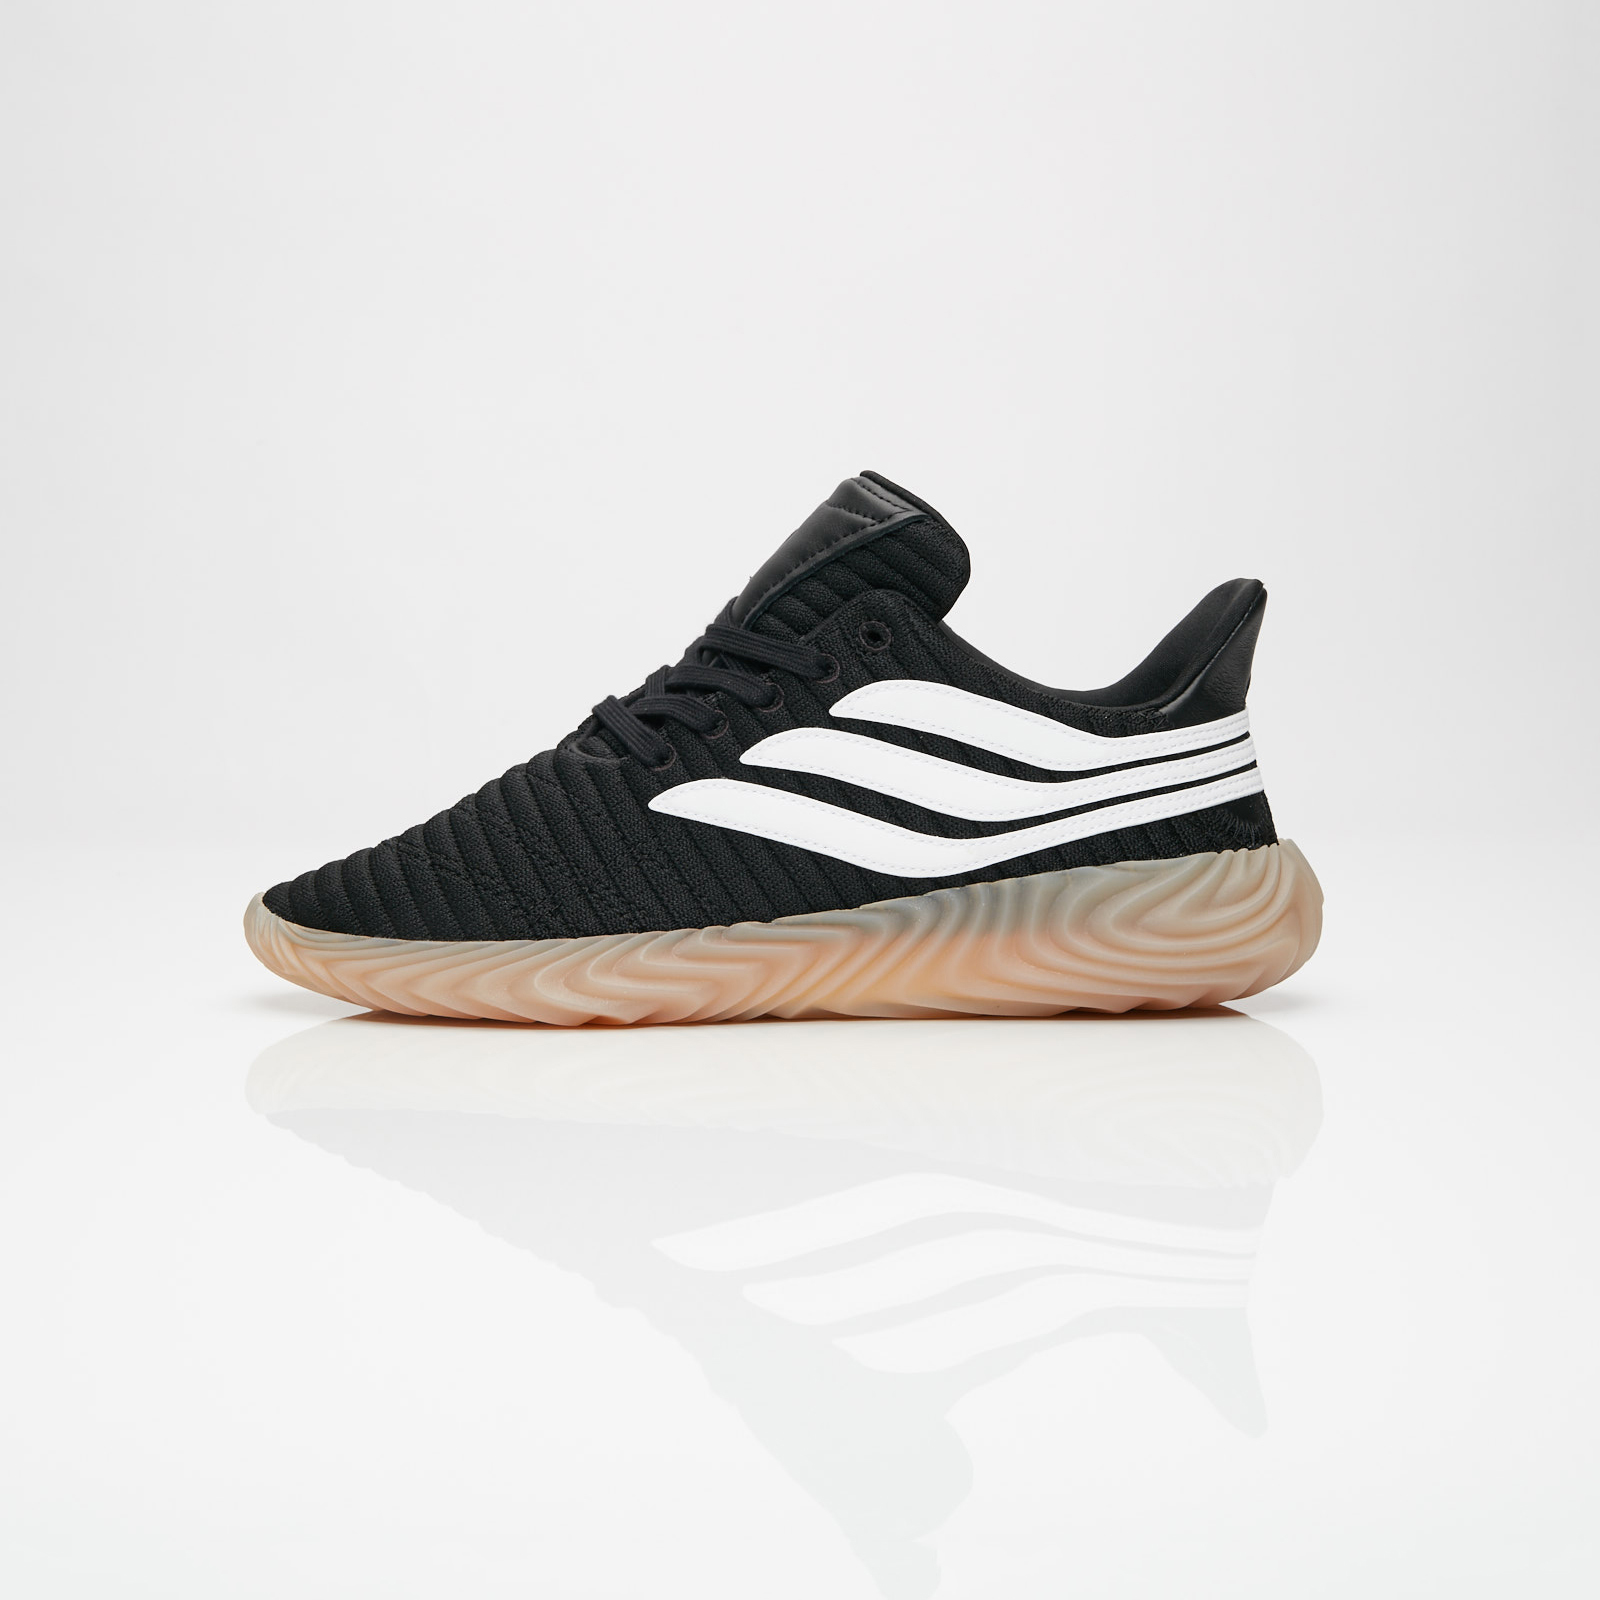 new concept 056c1 a268f adidas Sobakov - Aq1135 - Sneakersnstuff   sneakers   streetwear online  since 1999